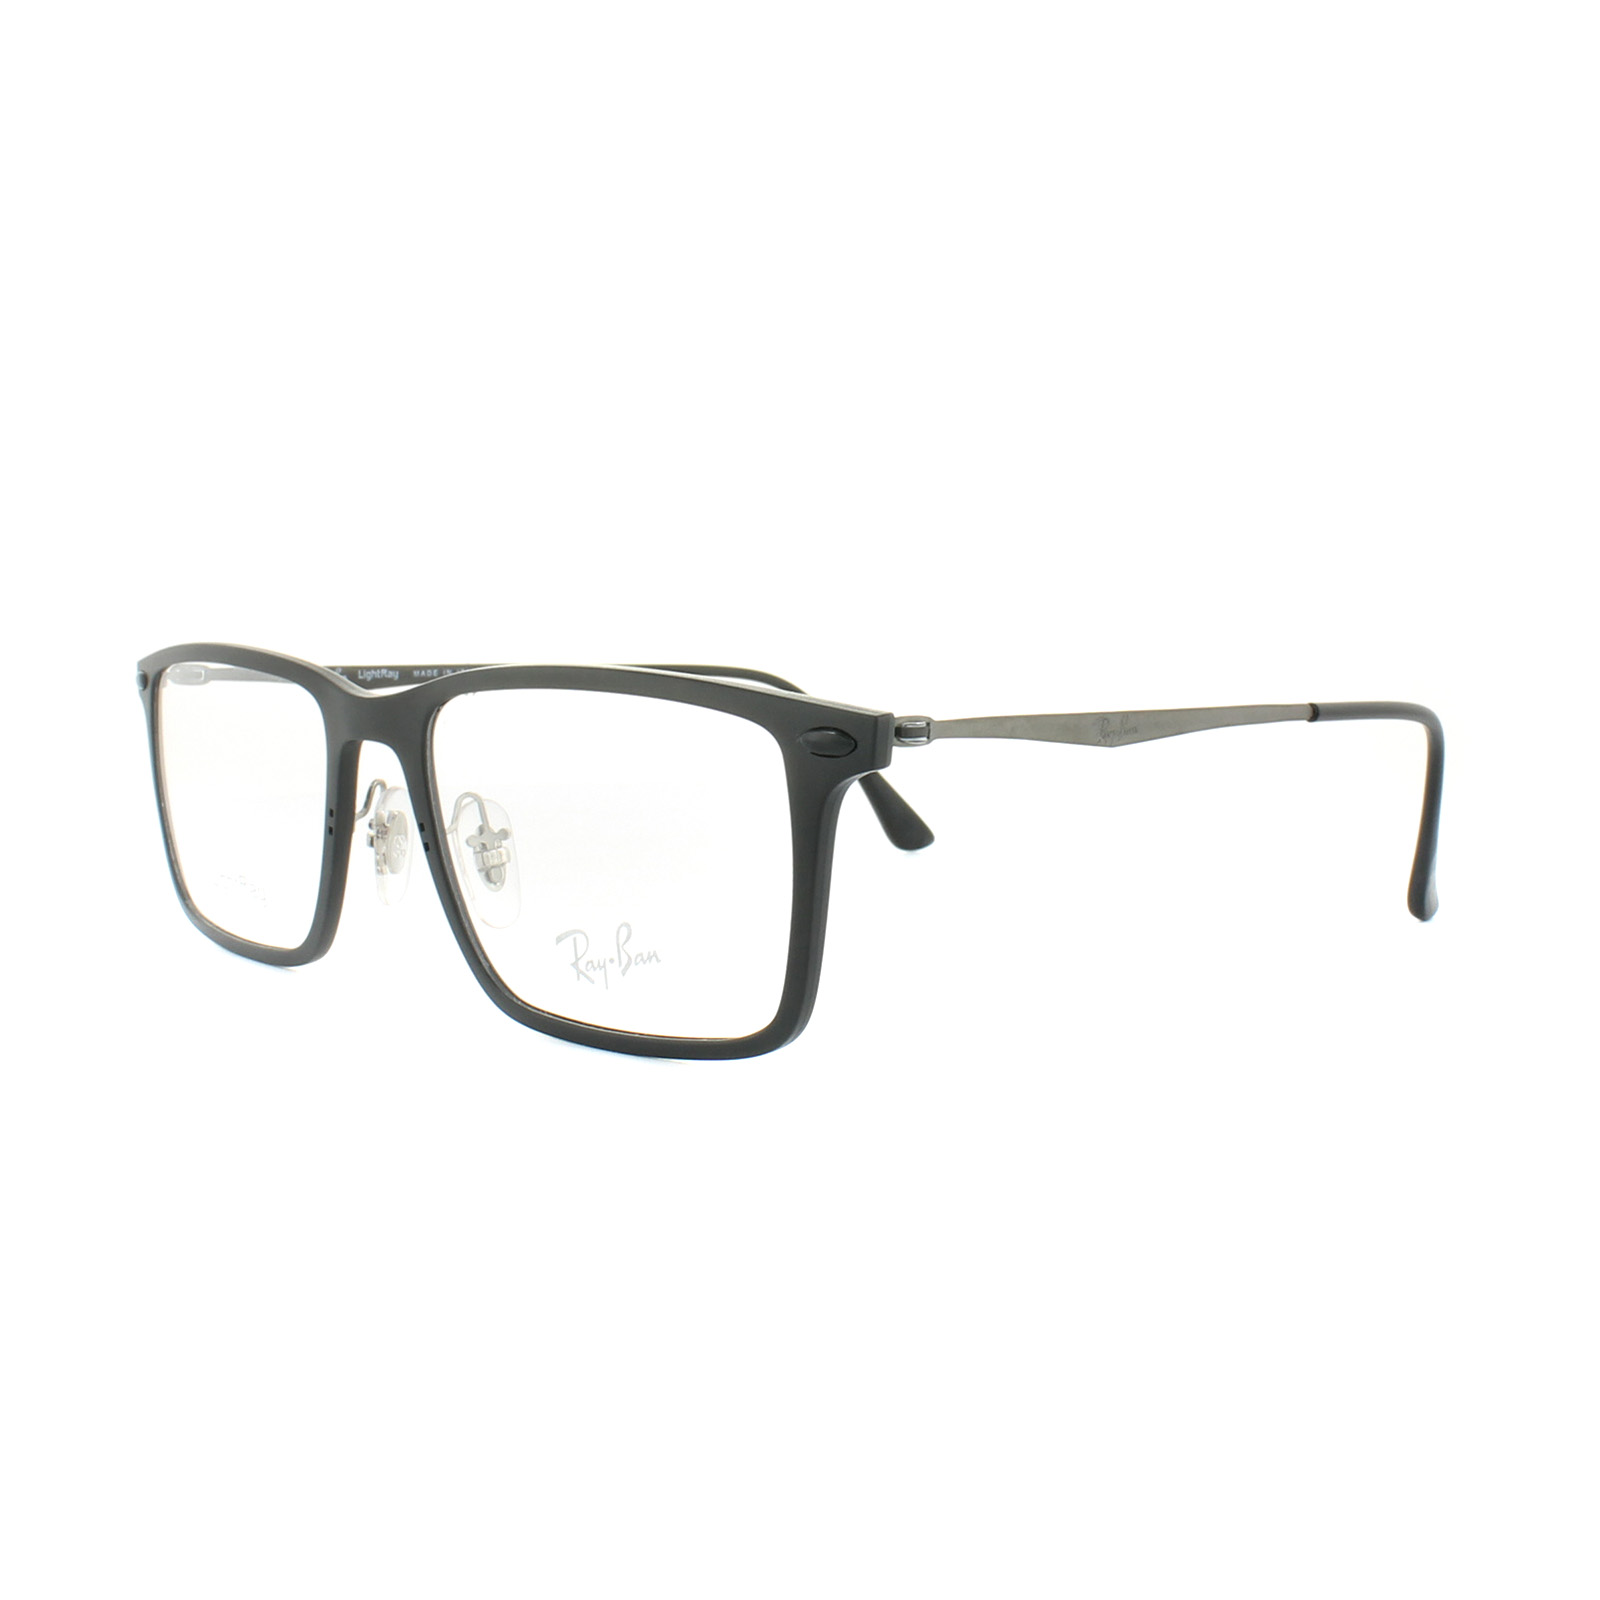 Cheap Ray-Ban RX 7050 Glasses Frames - Discounted Sunglasses